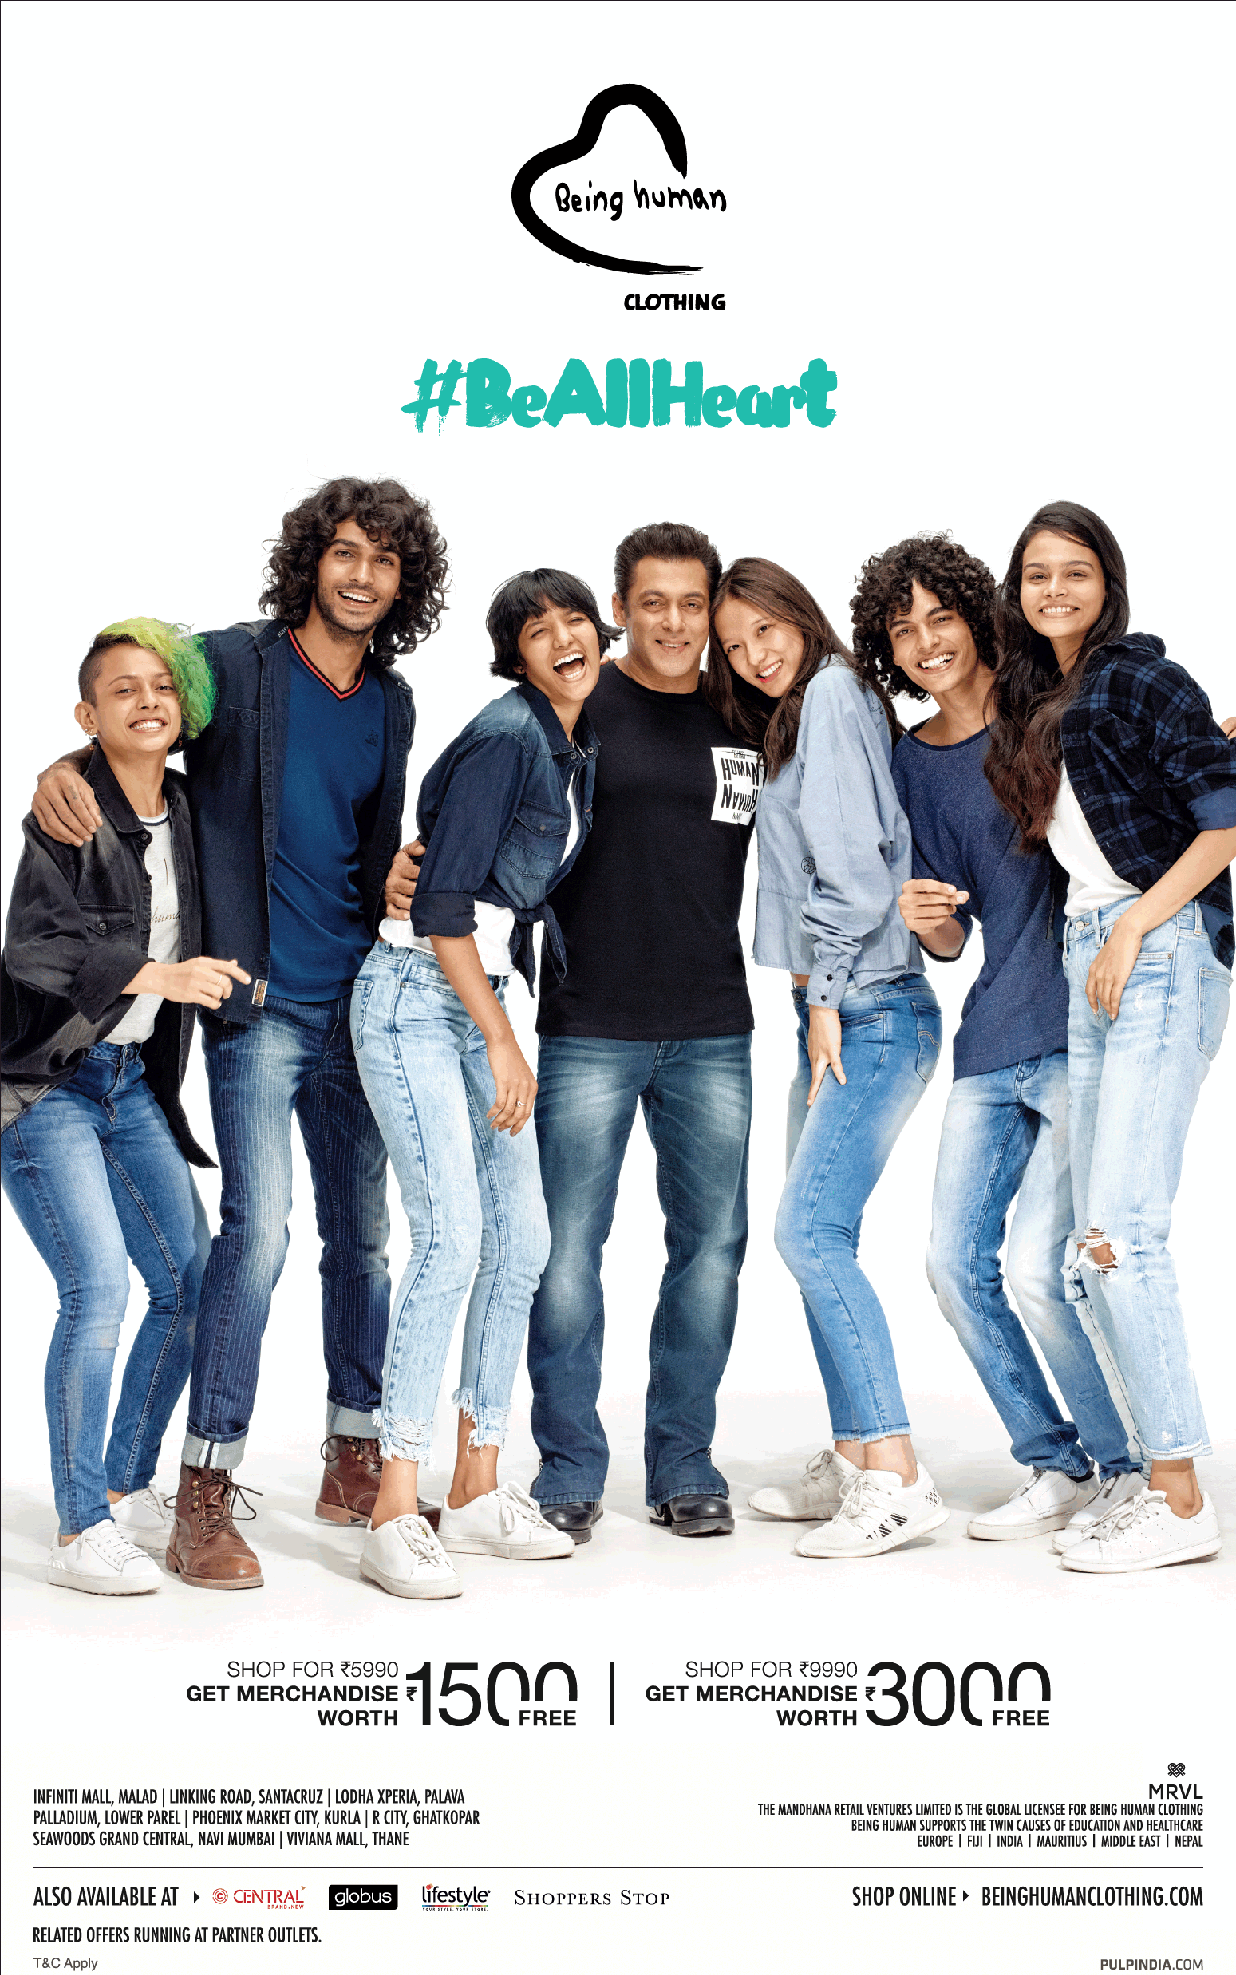 Being Human Clothing Be All Heart featuring Salman Khan Ad.